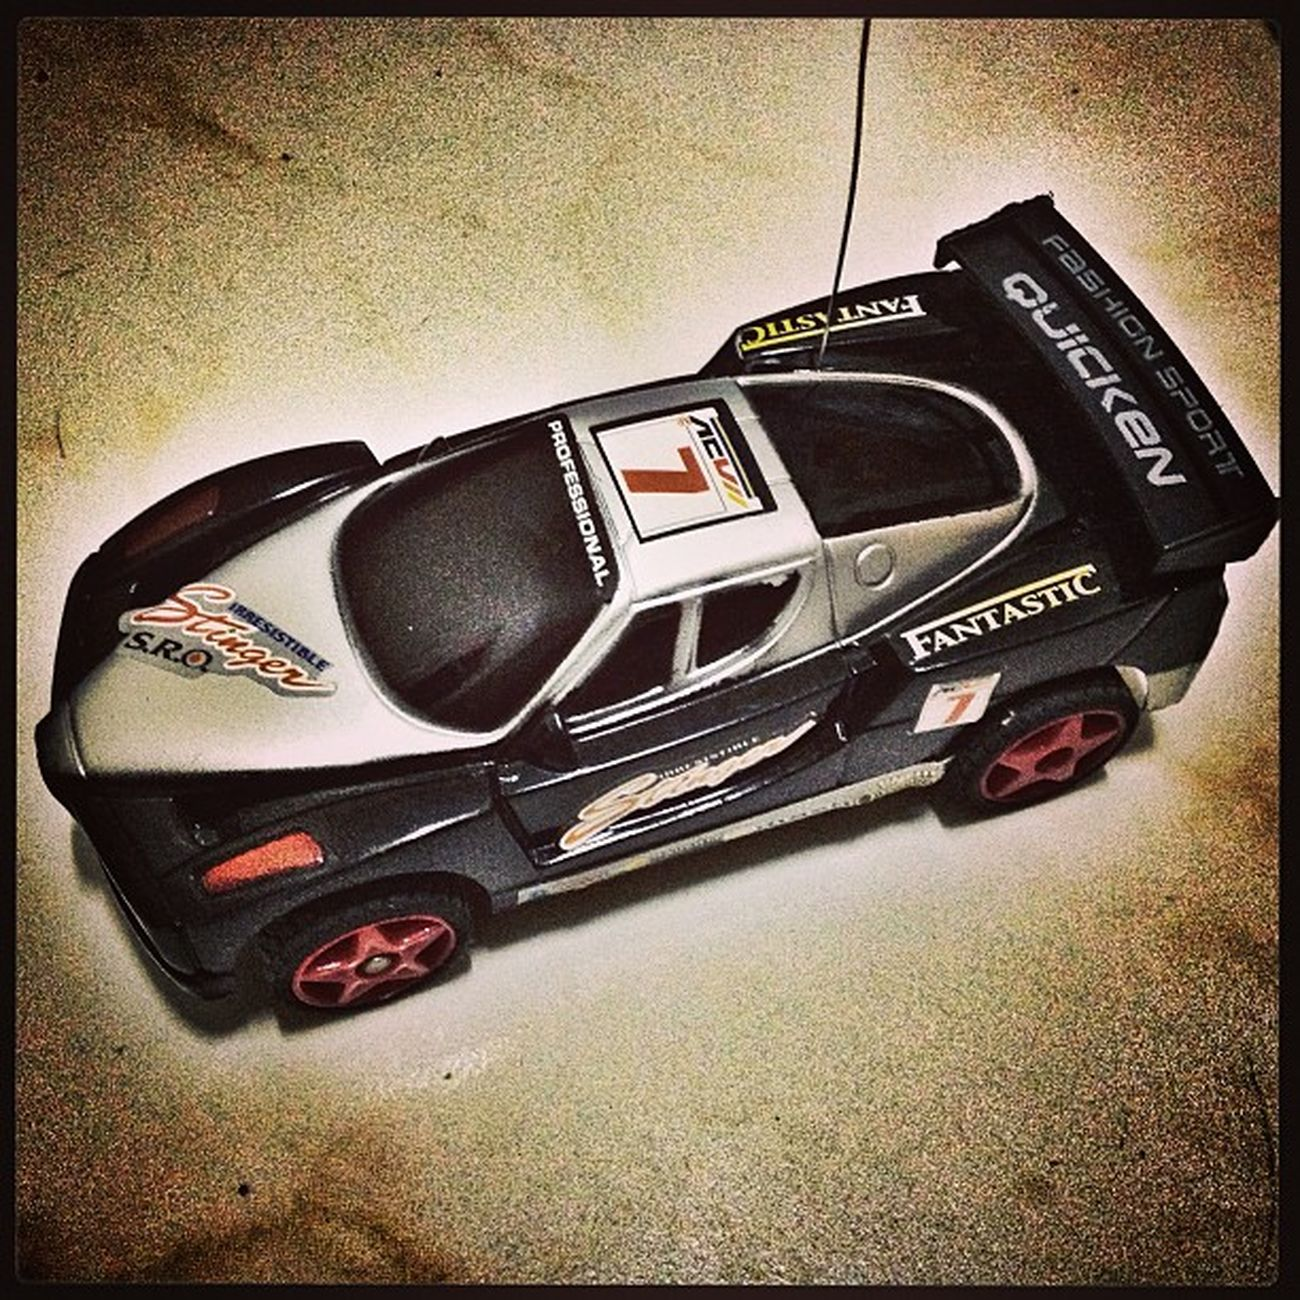 Baby Z's RC car. Past time ni papa. Hehe. 75Mhz Rastar Stinger. Speed RC Fast 75mhz